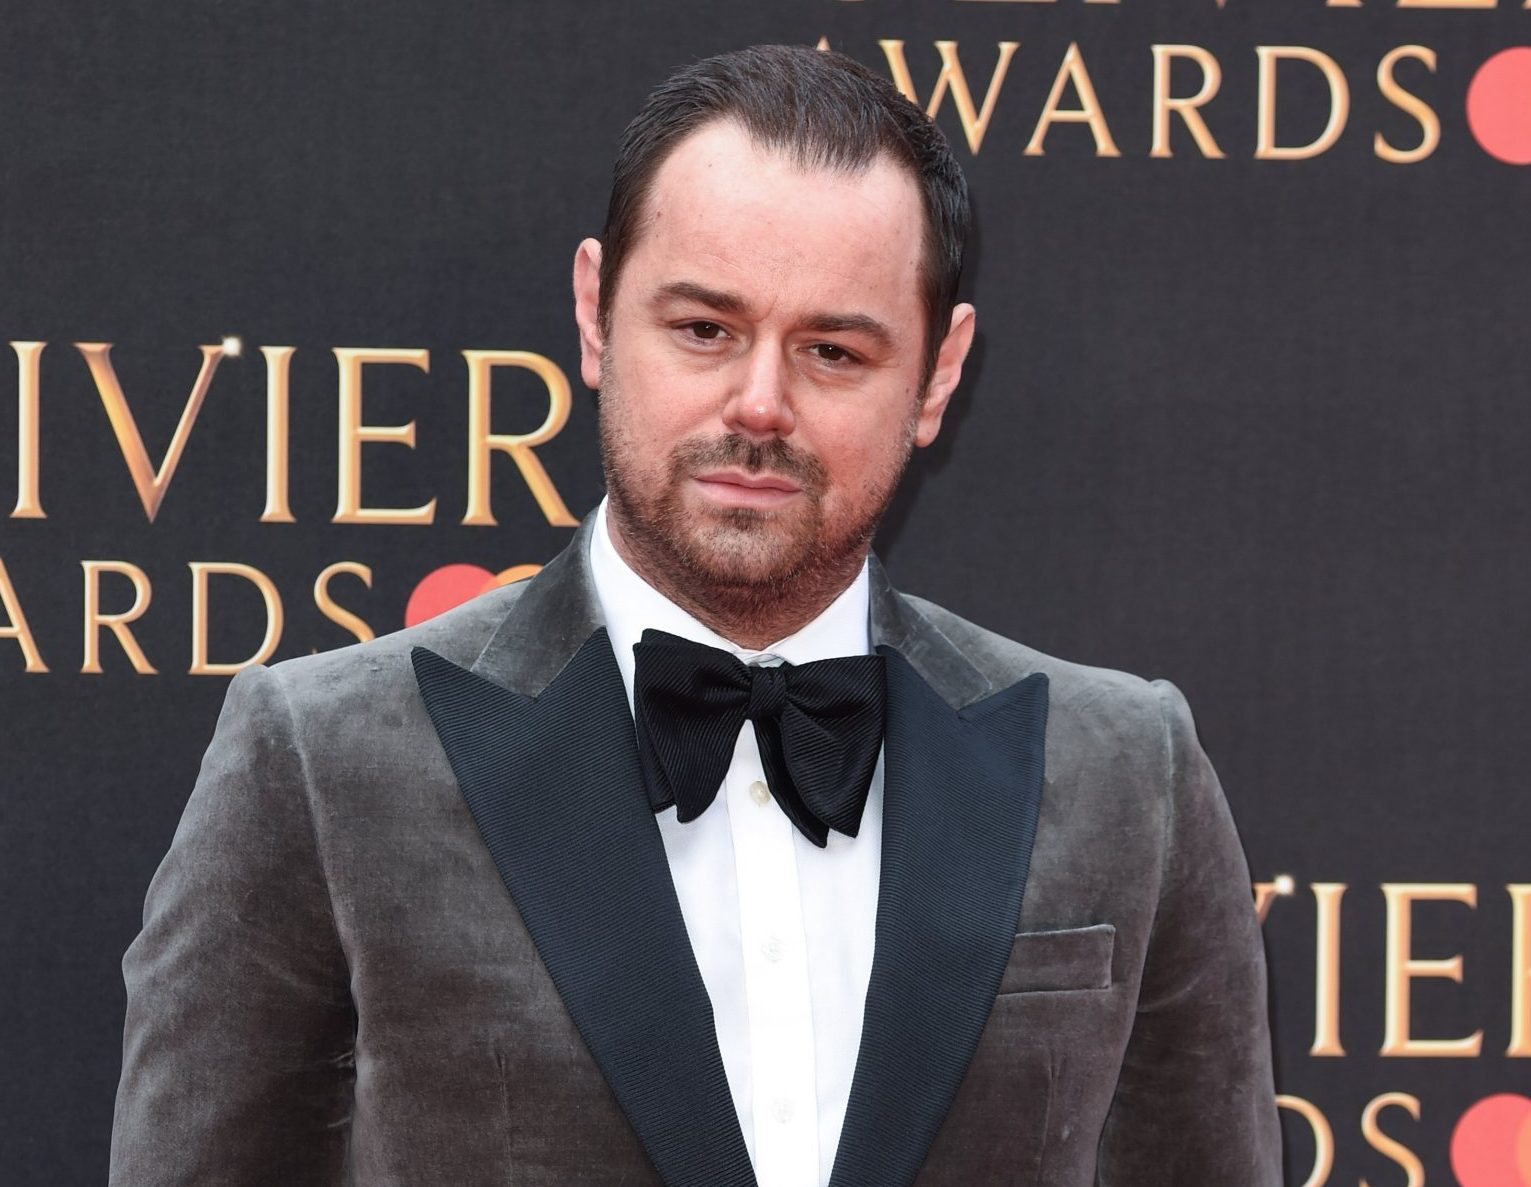 EastEnders star Danny Dyer's cheeky joke about the Duchess of Cornwall gets 'cut' from Olivier Awards